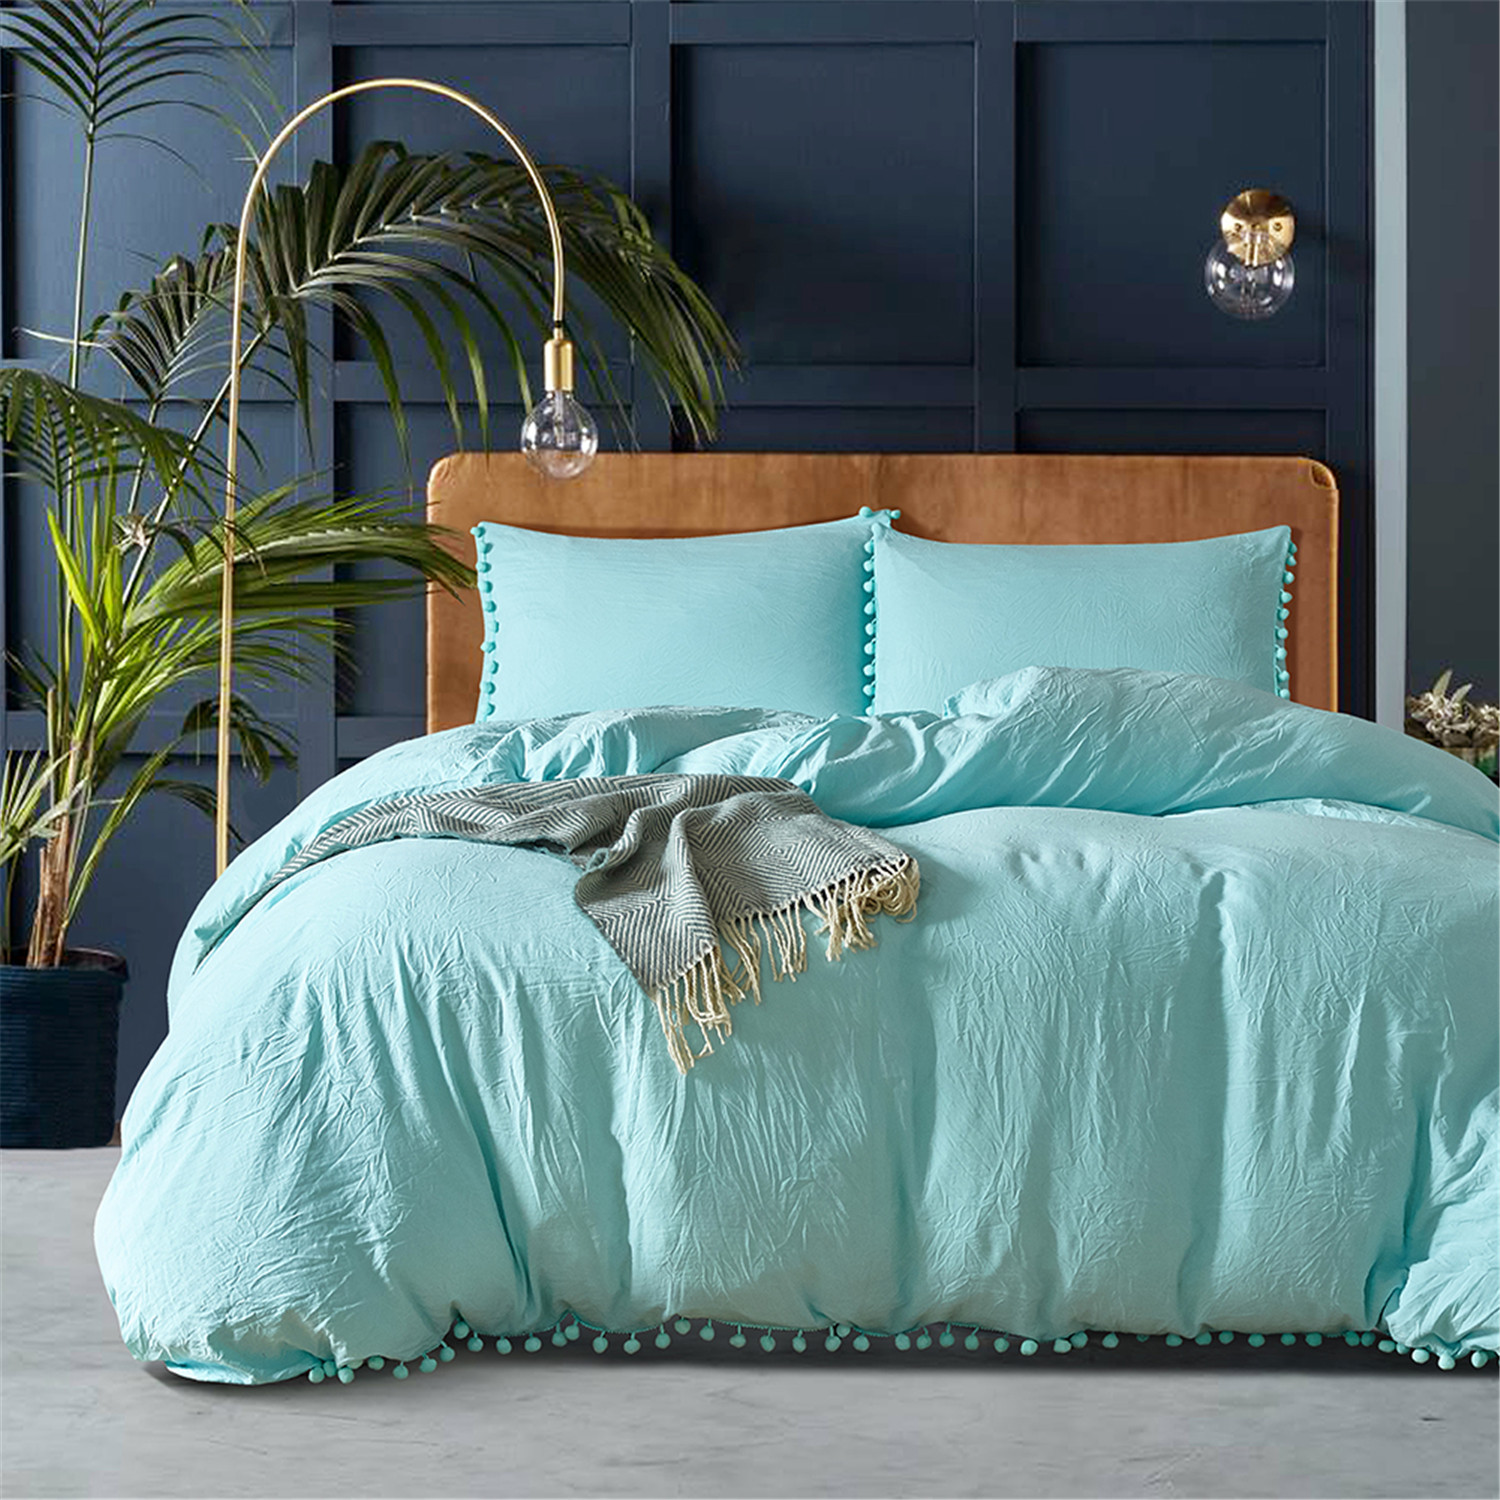 Lanke Solid Color Cotton Bed Bedding,King Queen Size Bedding Sets,Duvet Cover Bed Sheet Pillowcases,Bed Linen Cotton